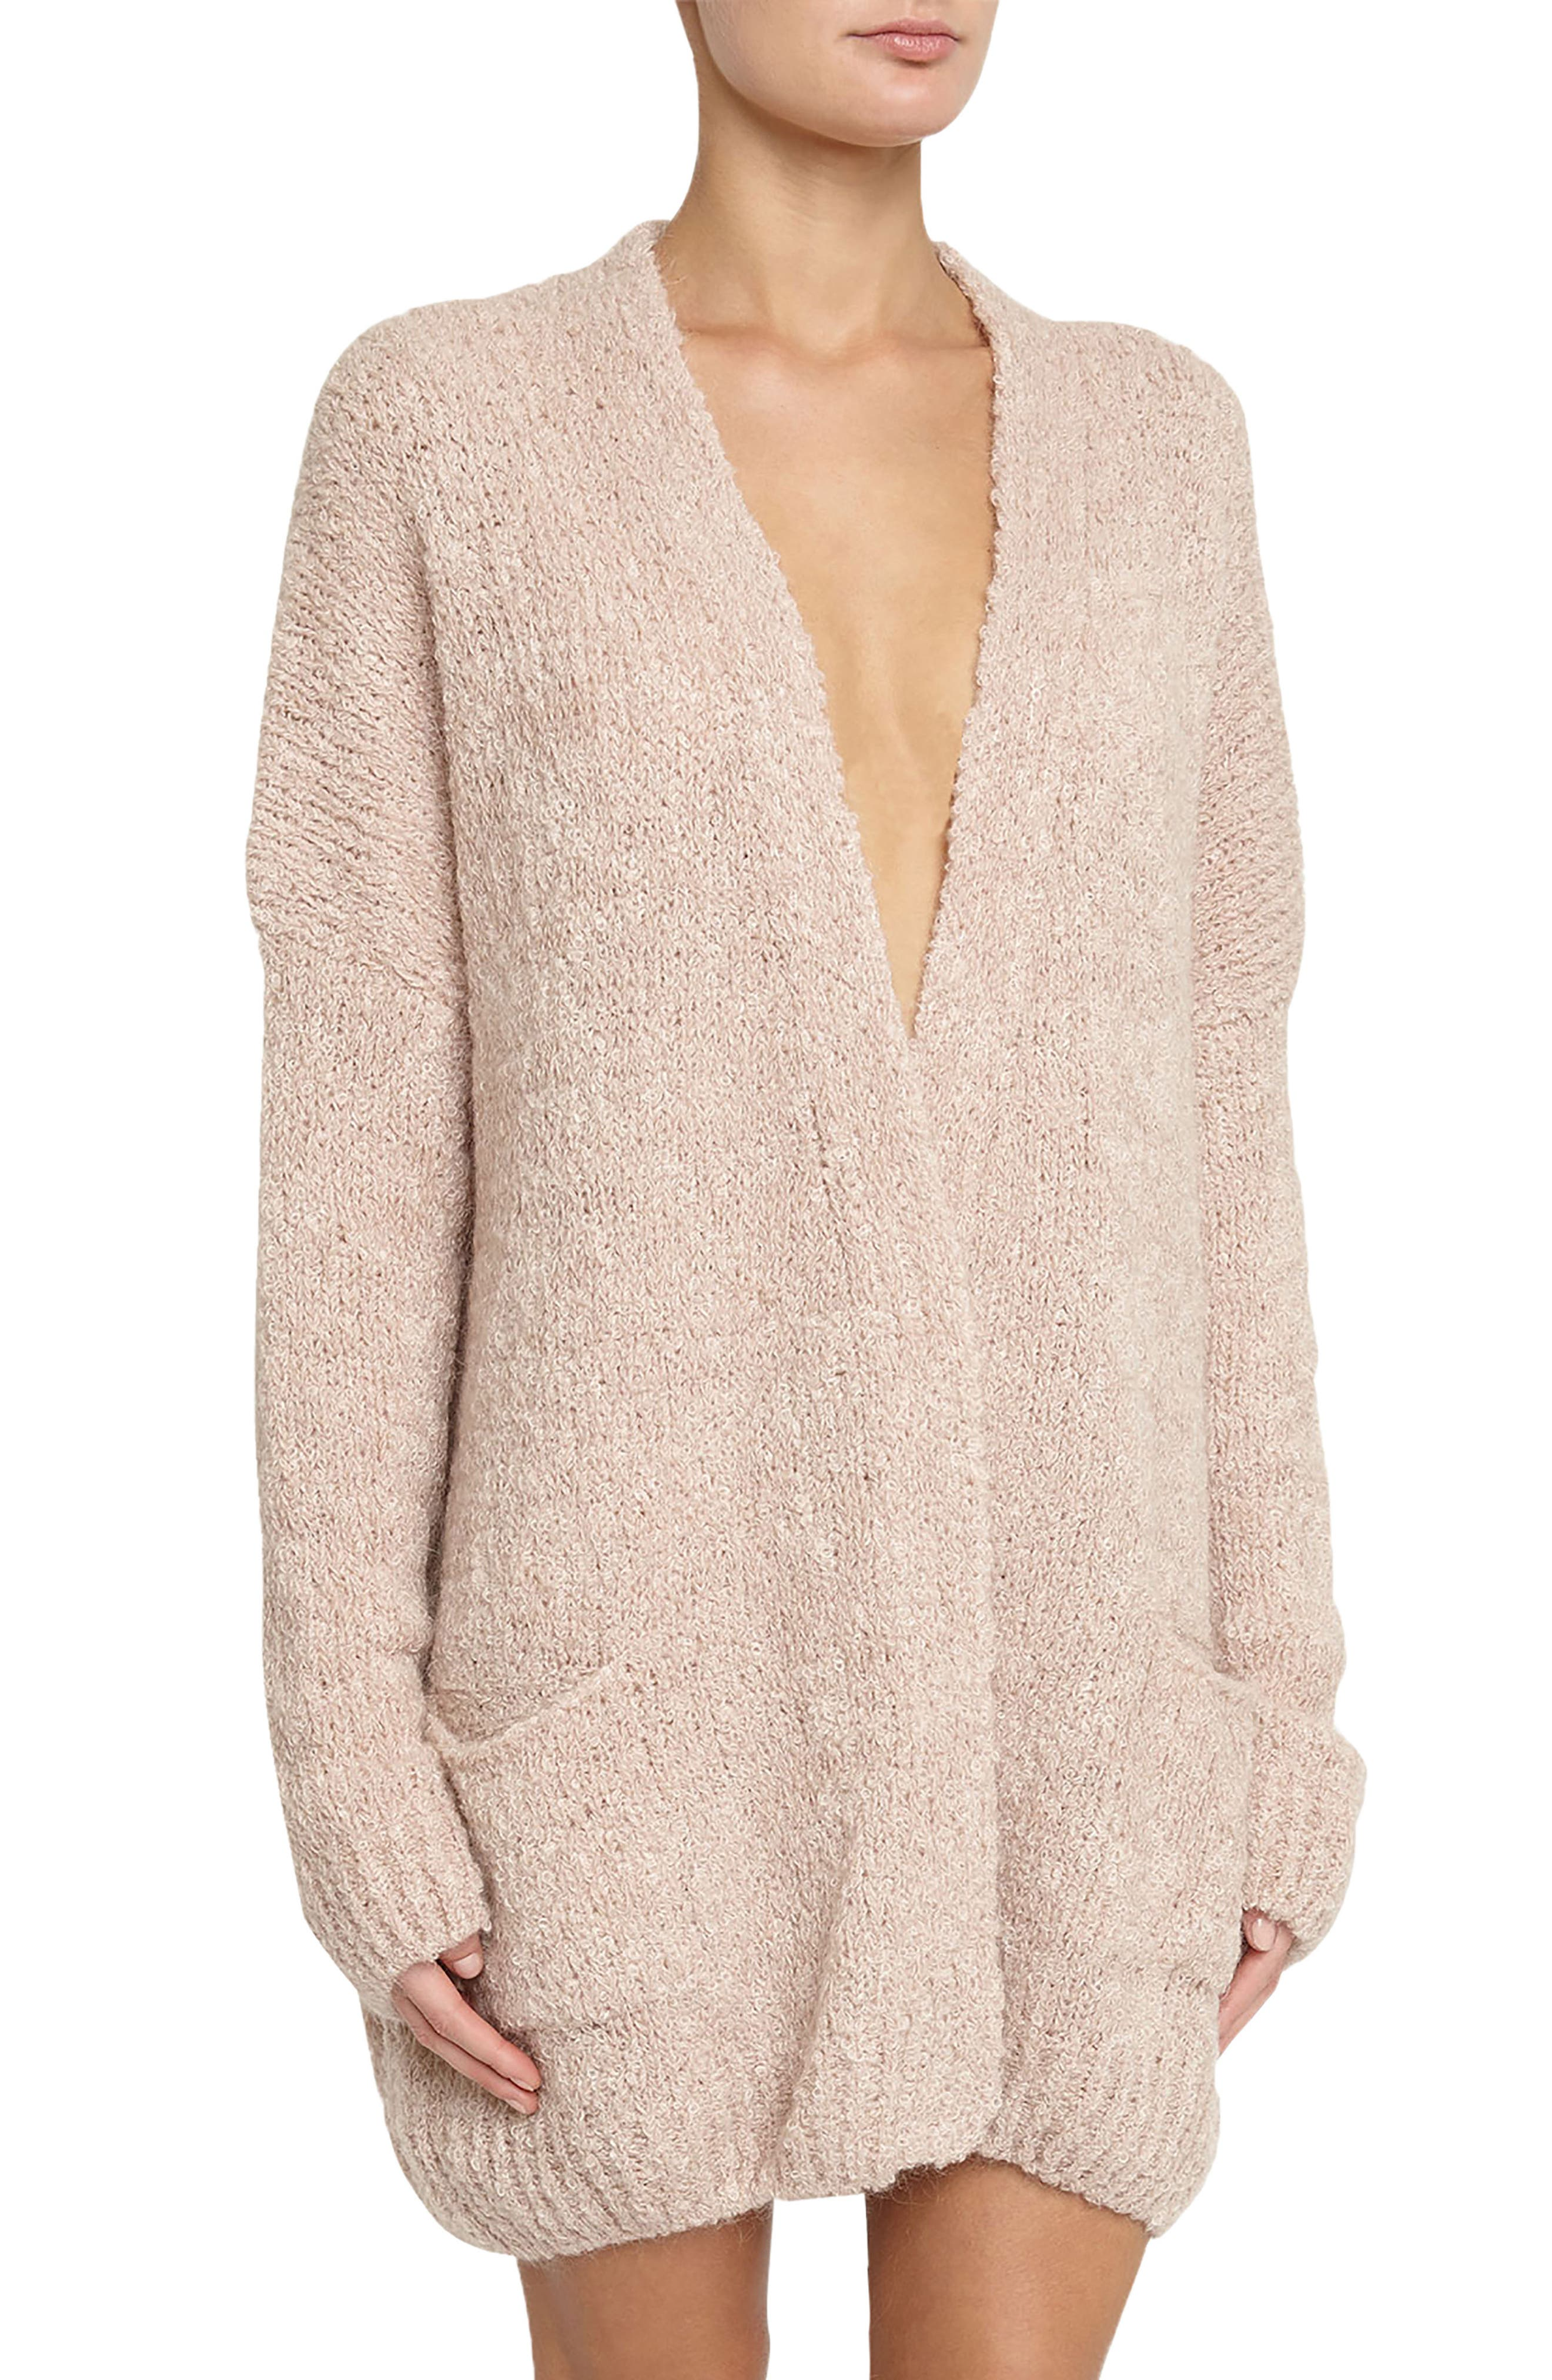 Lana Oversize Cardigan,                             Alternate thumbnail 4, color,                             Cameo Pink